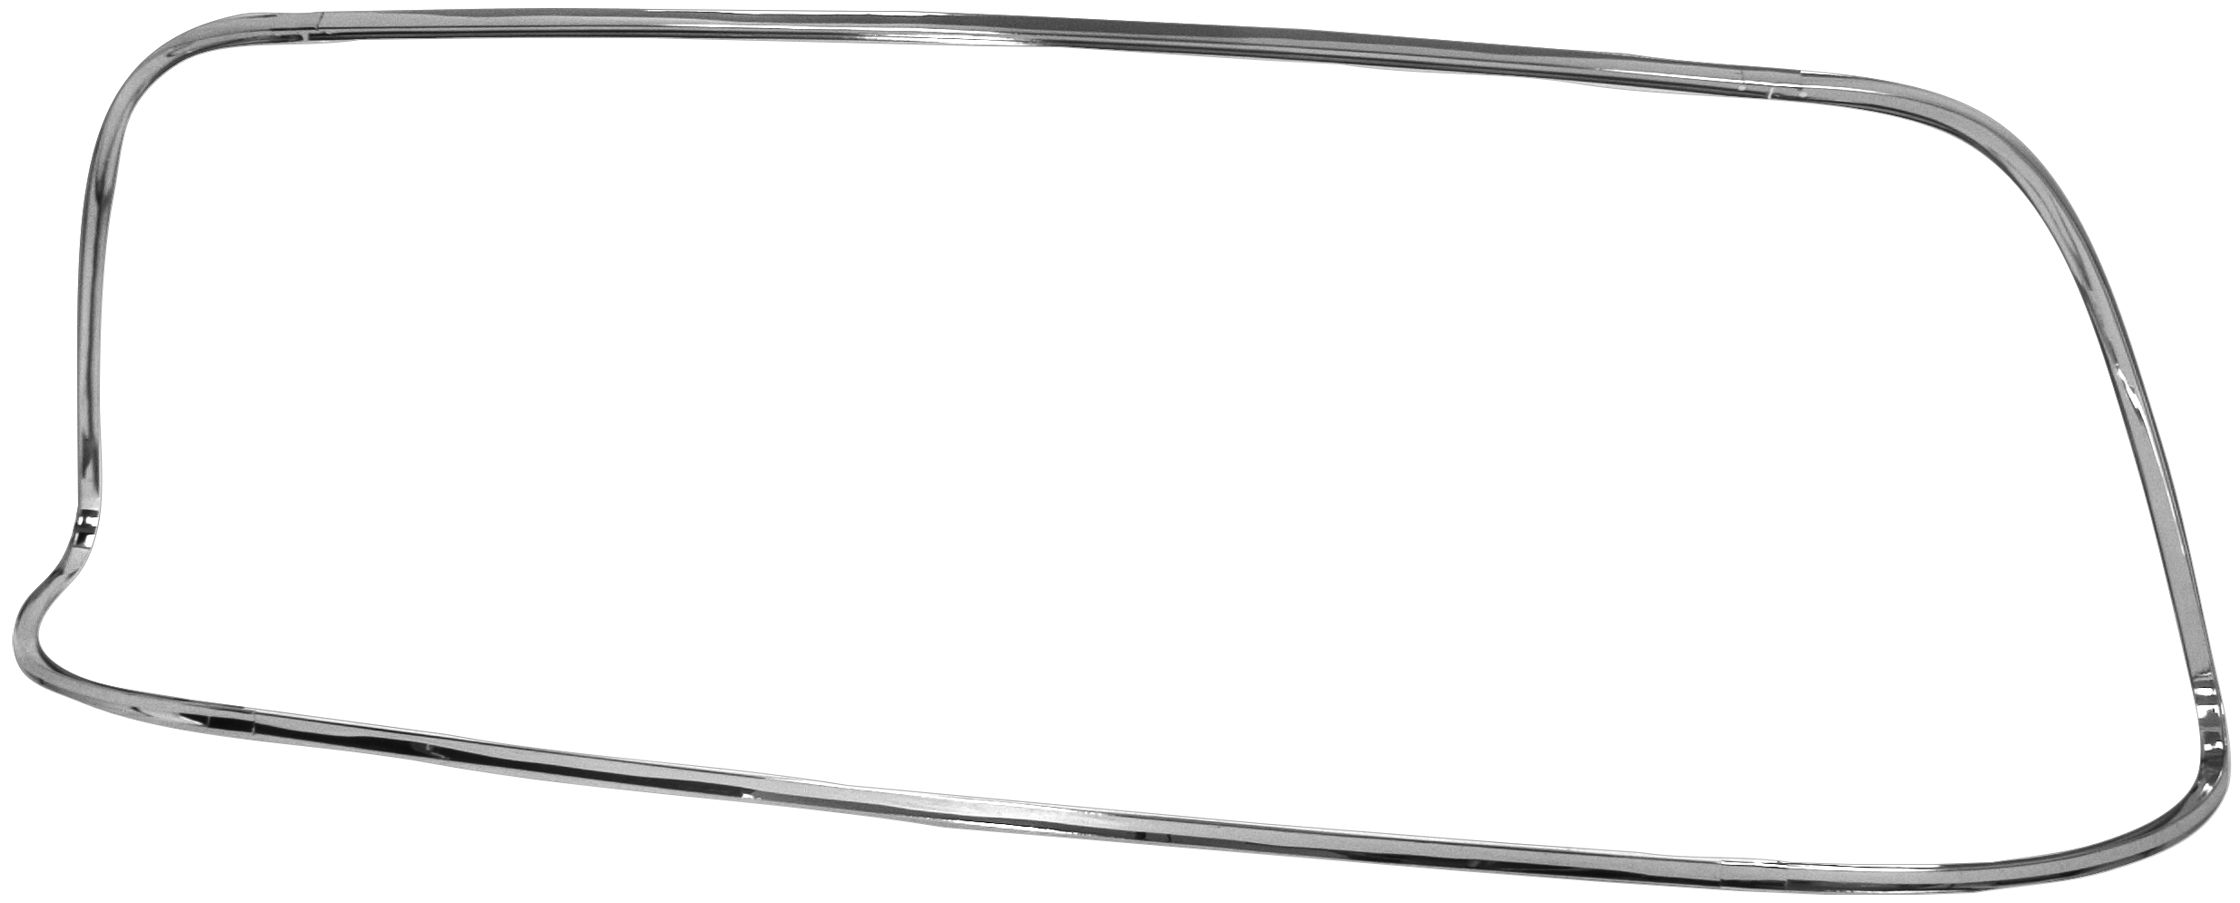 1955-59 C10 windshield trim